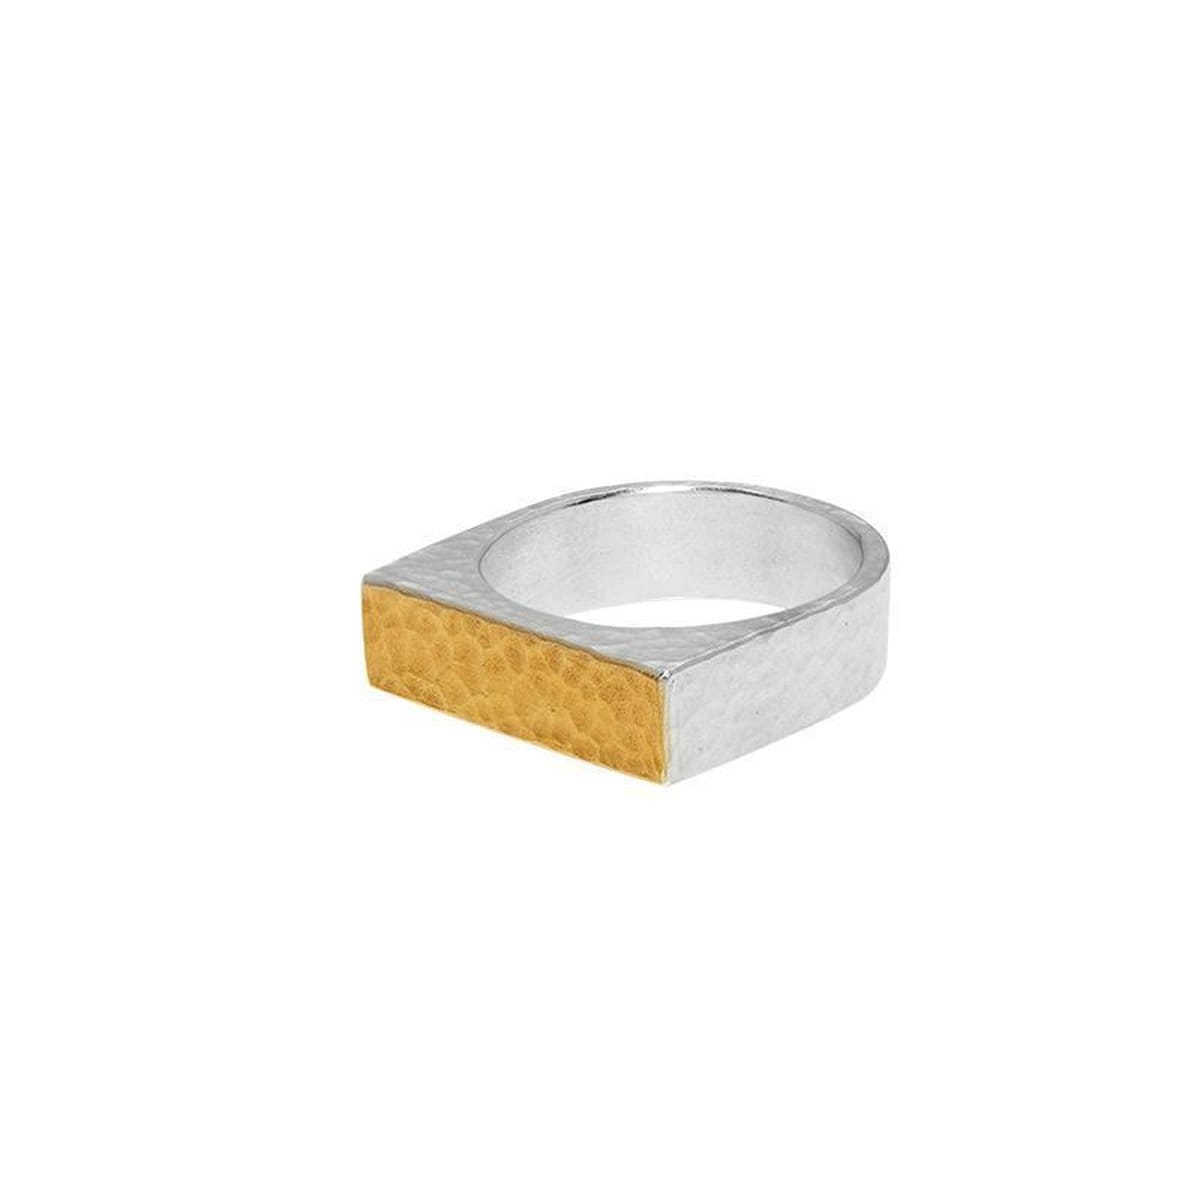 Gold Small Flat Mango Ring - SR-RTMN-195-G-GURHAN-Renee Taylor Gallery